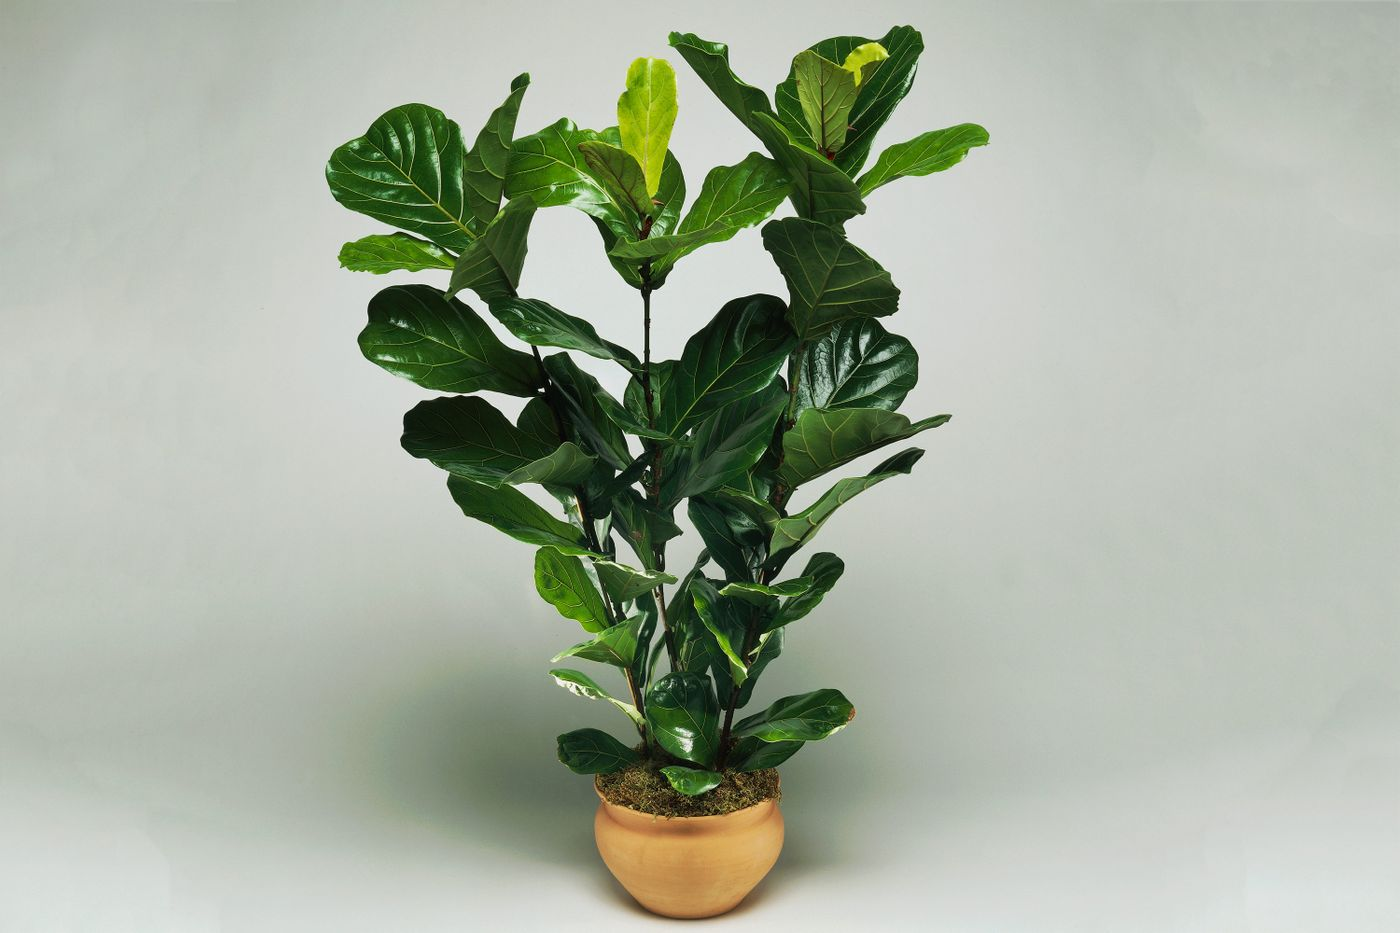 Fiddle-leaf fig plant in a tan pot.